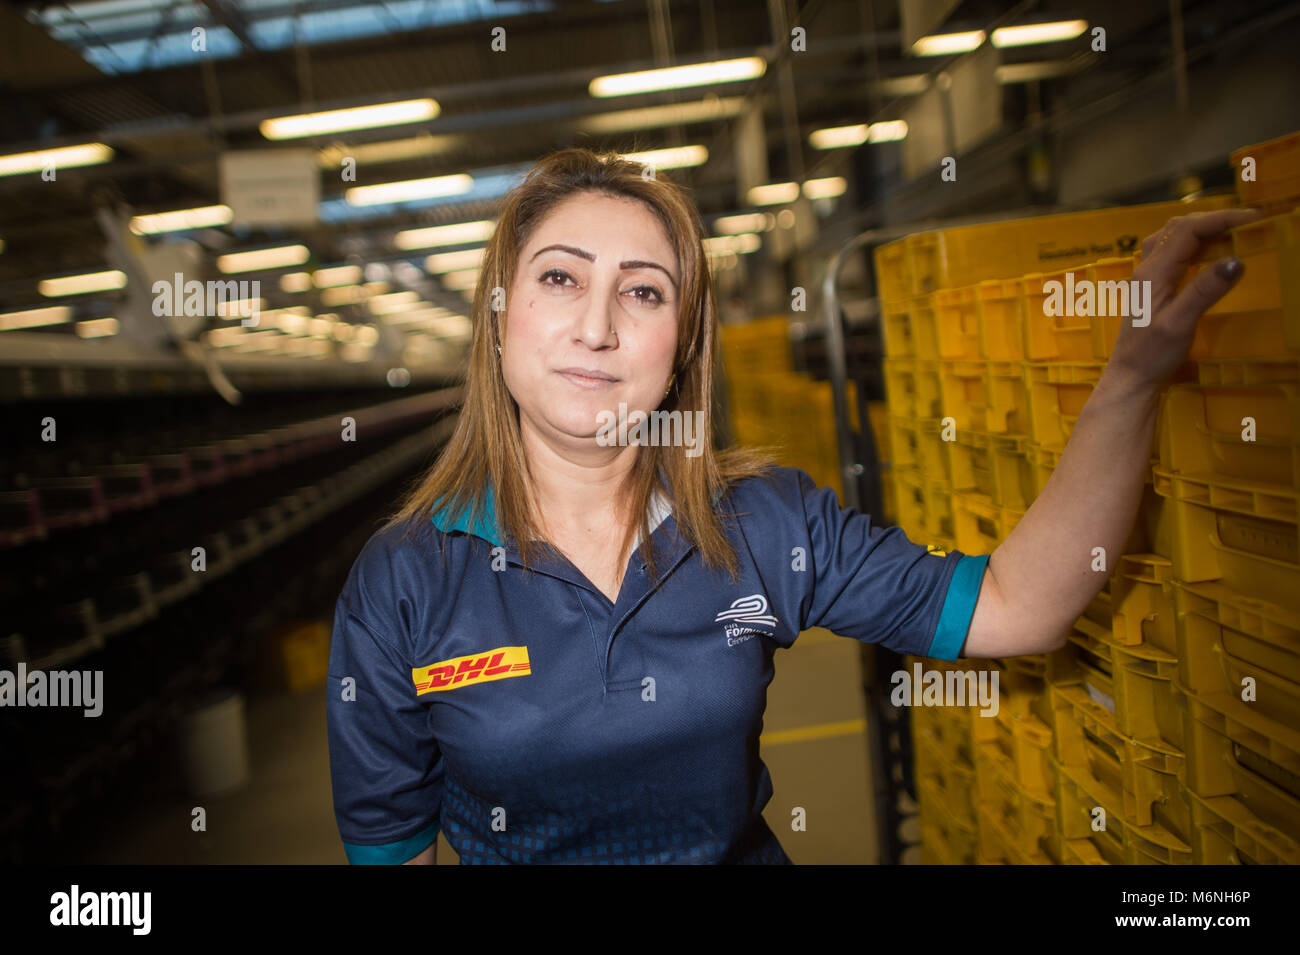 22 February 2018, Germany, Osterweddingen: Durcan Iskan from Syria works at the mail centre of the Deutshe Post Stock Photo